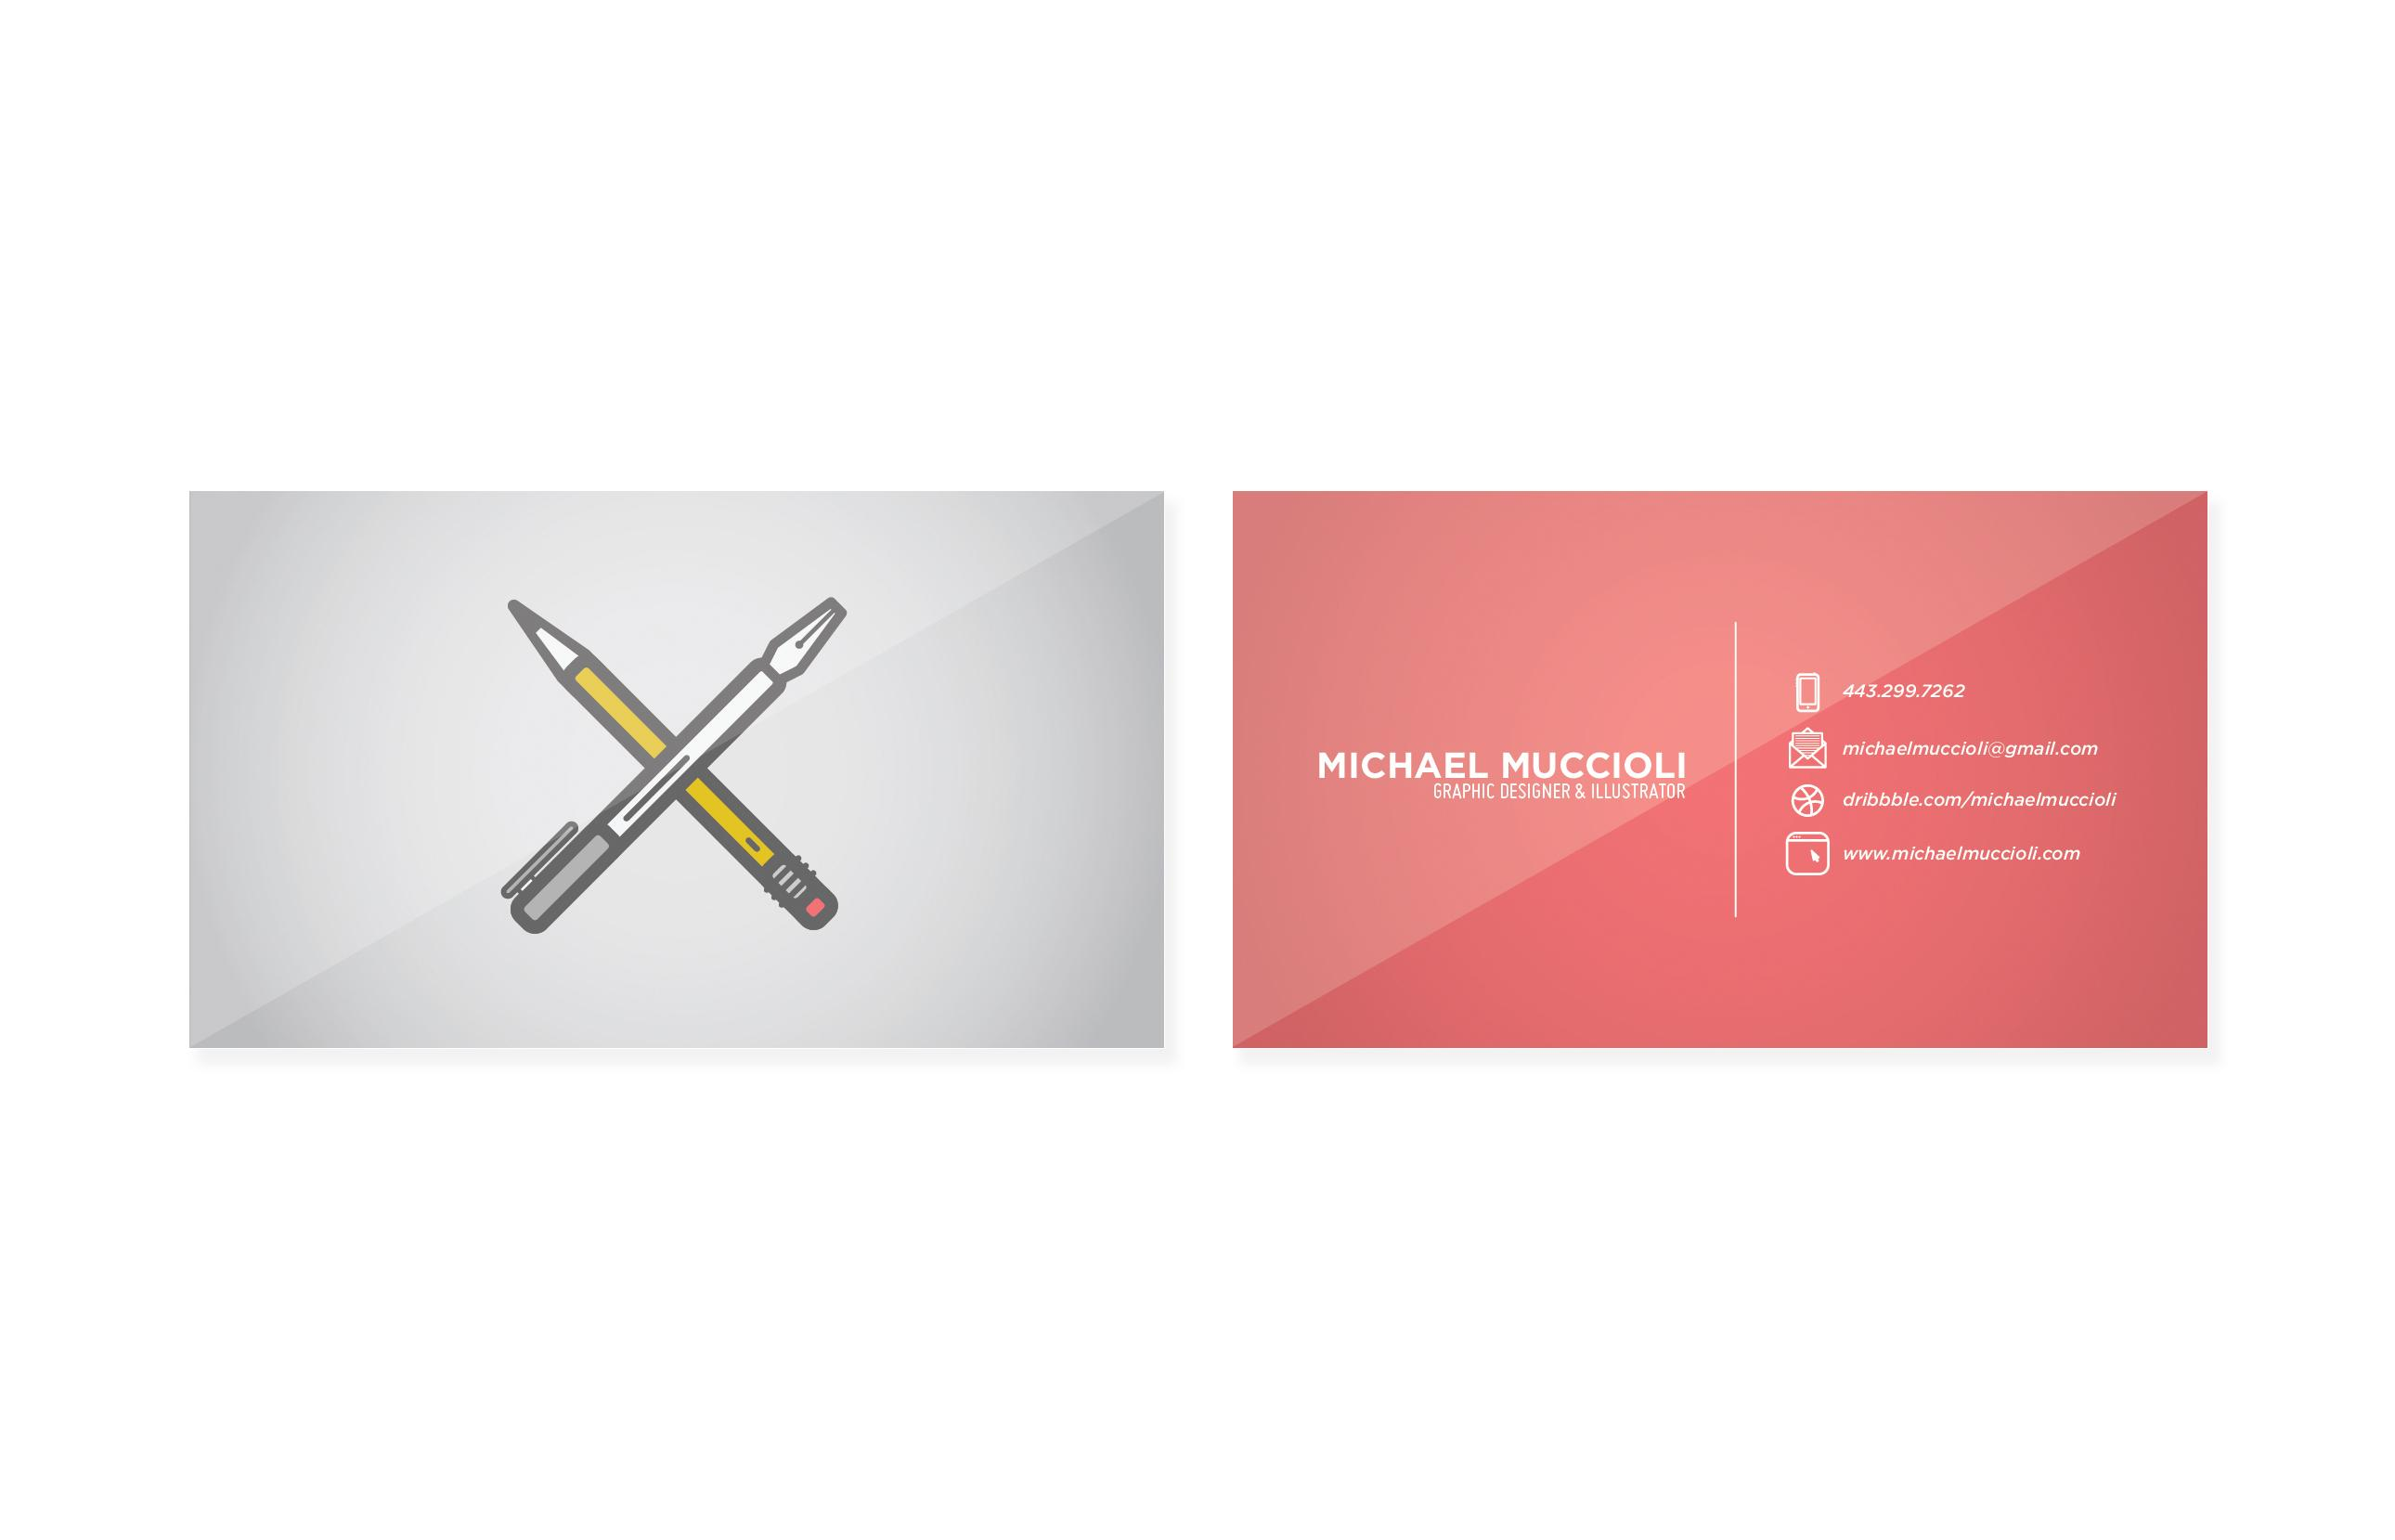 Freelance Business Card - image 1 - student project